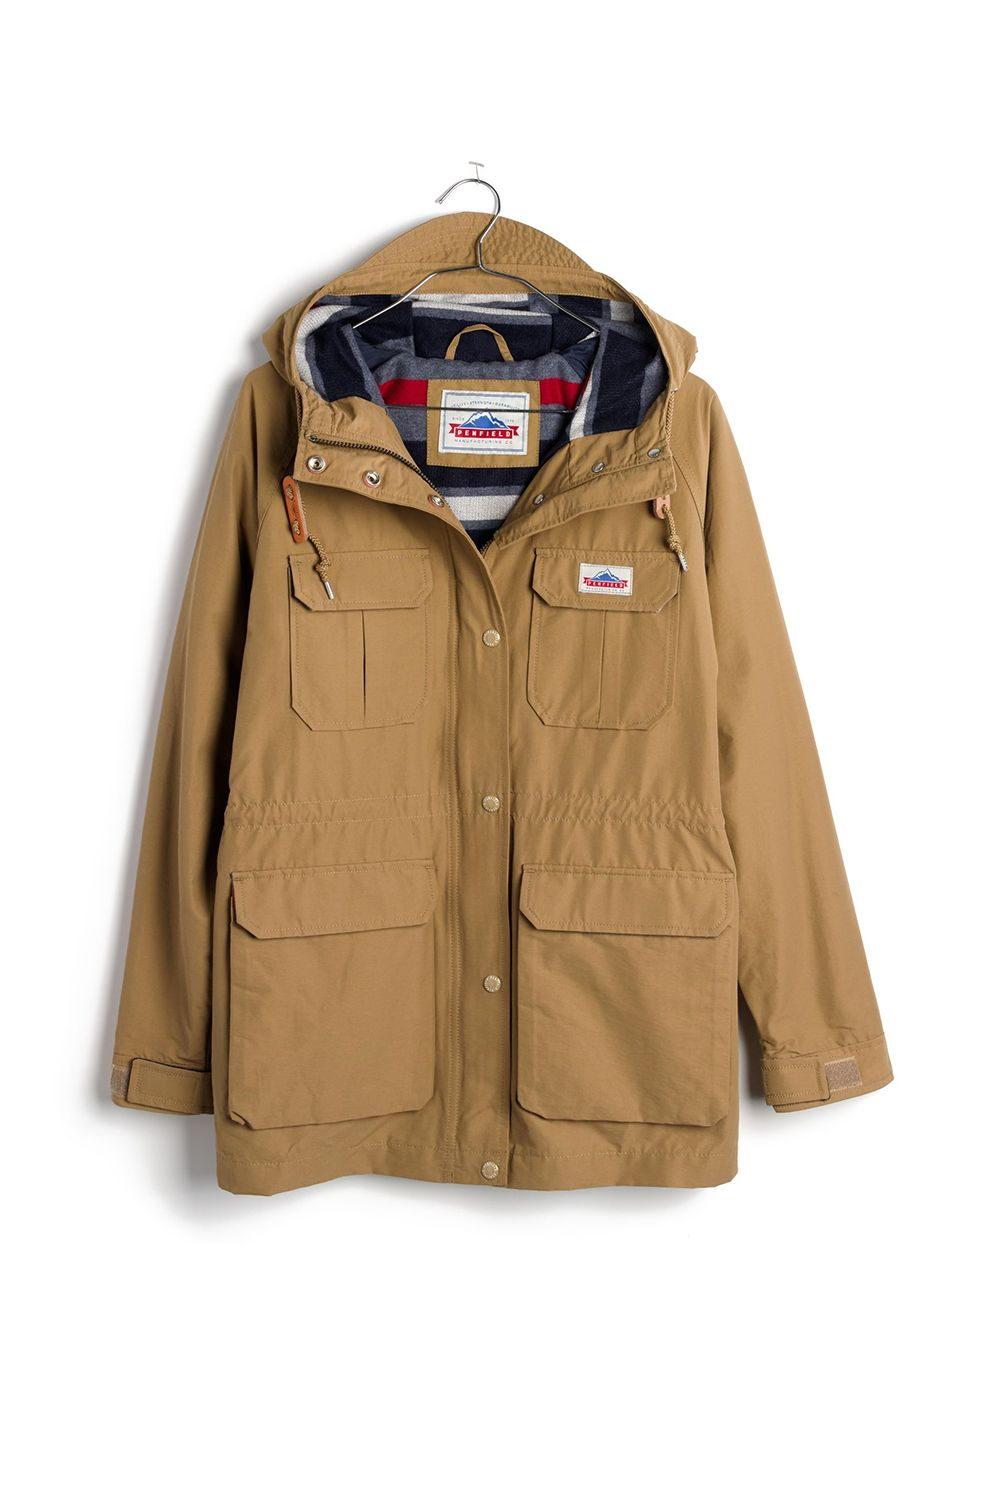 """<p>This Madewell collab with Penfield (a Massachusetts-based company that makes legit outdoor goodies) produced pretty much the perfect Parka: a heritage-inspired pick with fleece-lined pockets and a bold striped lining that looks good on and off a trail.</p><p><strong data-redactor-tag=""""strong"""" data-verified=""""redactor"""">Madewell x Penfield Kasson Parka in Tan, $200; </strong><a href=""""https://www.madewell.com/madewell_category/JACKETSANDOUTERWEAR/Jackets/PRDOVR~F5972/F5972.jsp"""" target=""""_blank"""" data-tracking-id=""""recirc-text-link""""><strong data-redactor-tag=""""strong"""" data-verified=""""redactor"""">madewell.com</strong></a></p>"""